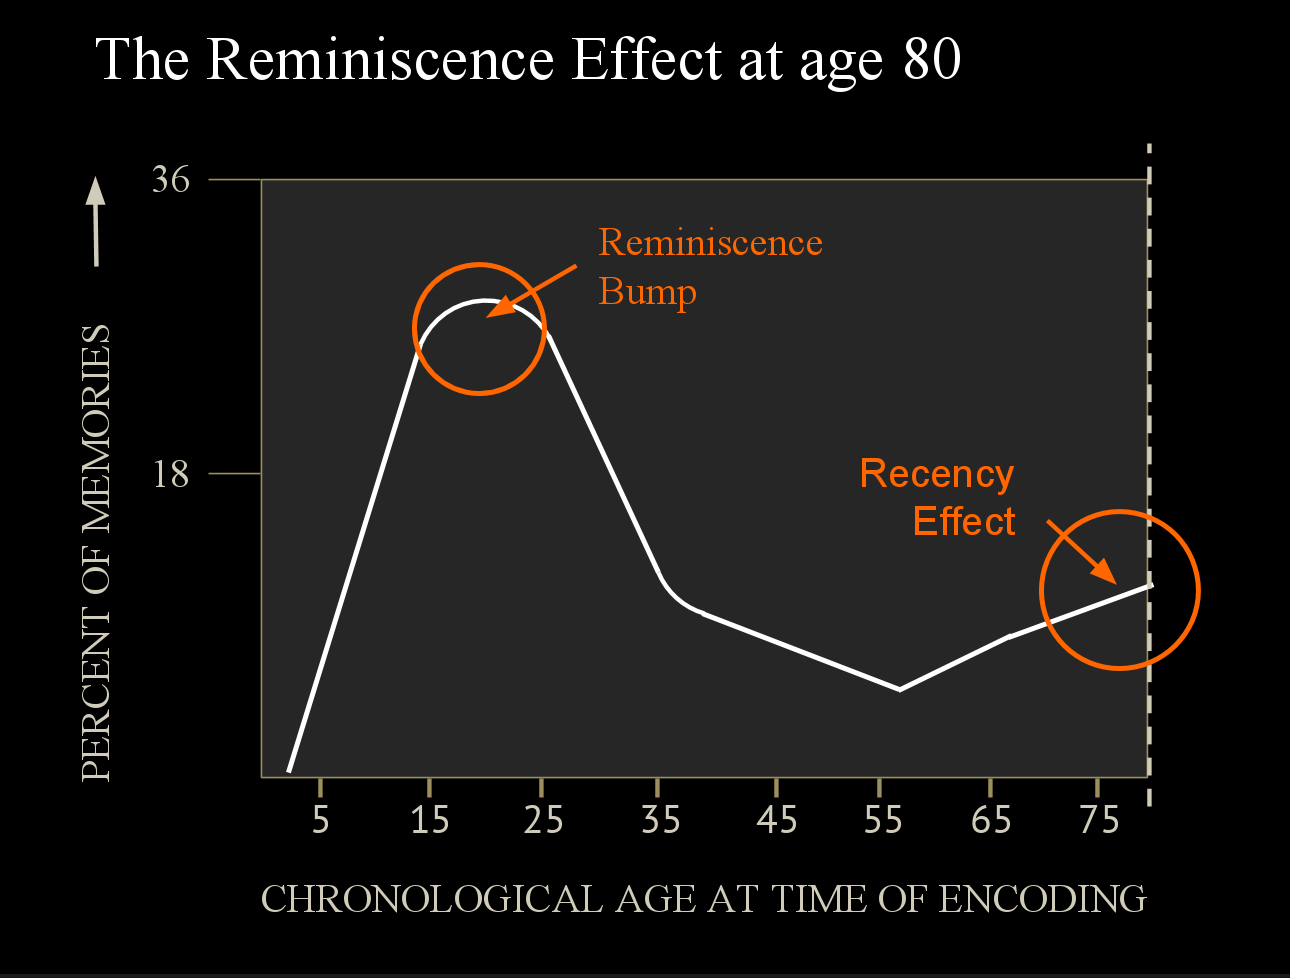 This camel graph of reminiscence starts at zero and stays there for a bit, since nobody remembers much before the age of two or three. Retrieval climbs very quickly however, reaching its peak by age twenty.